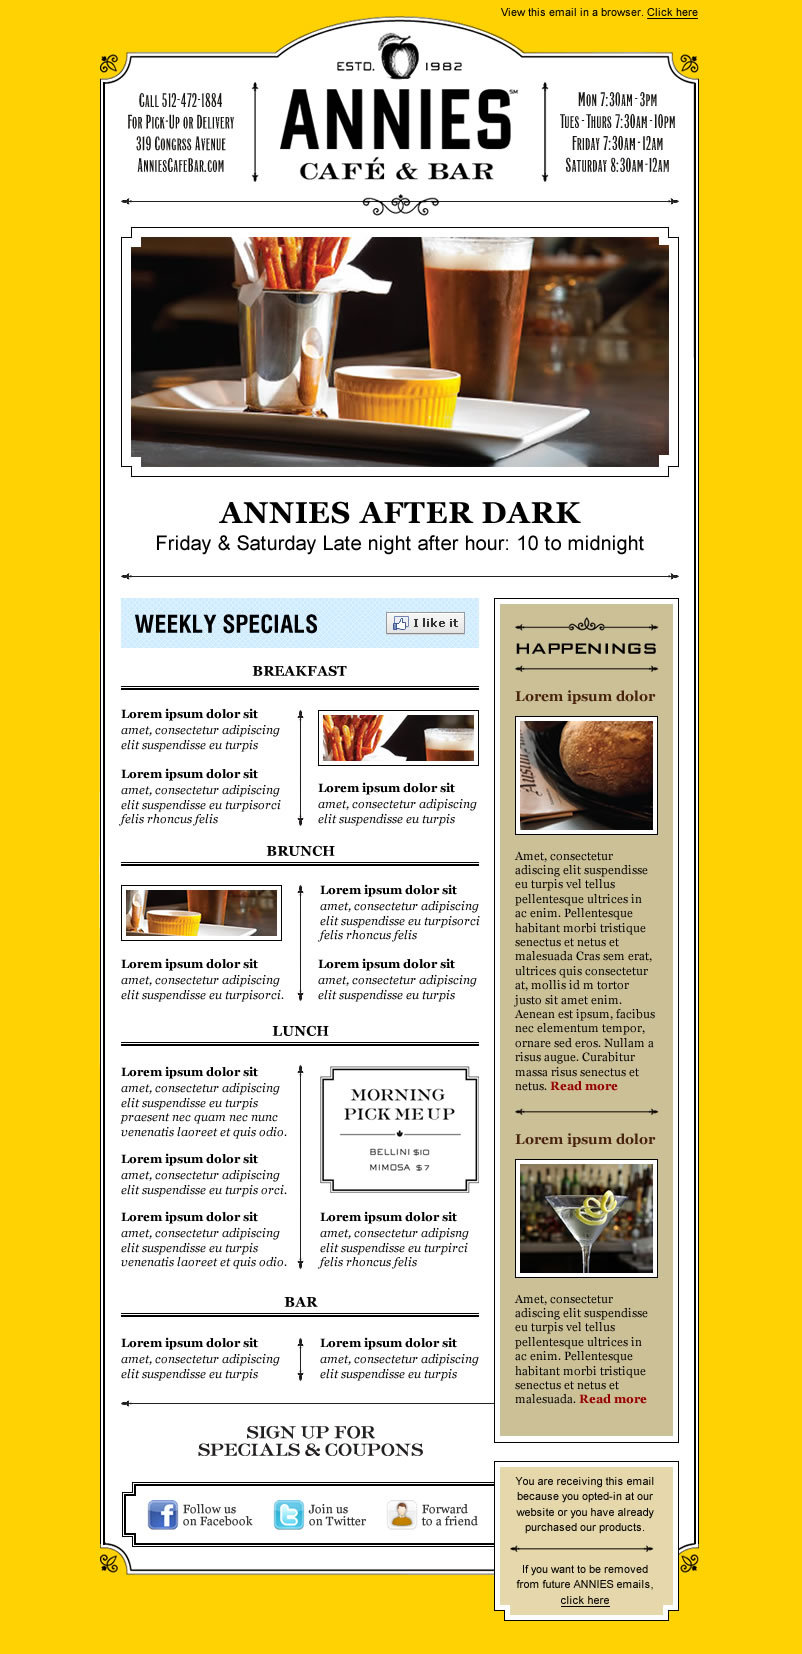 Image of Annies Café & Bar Newsletter